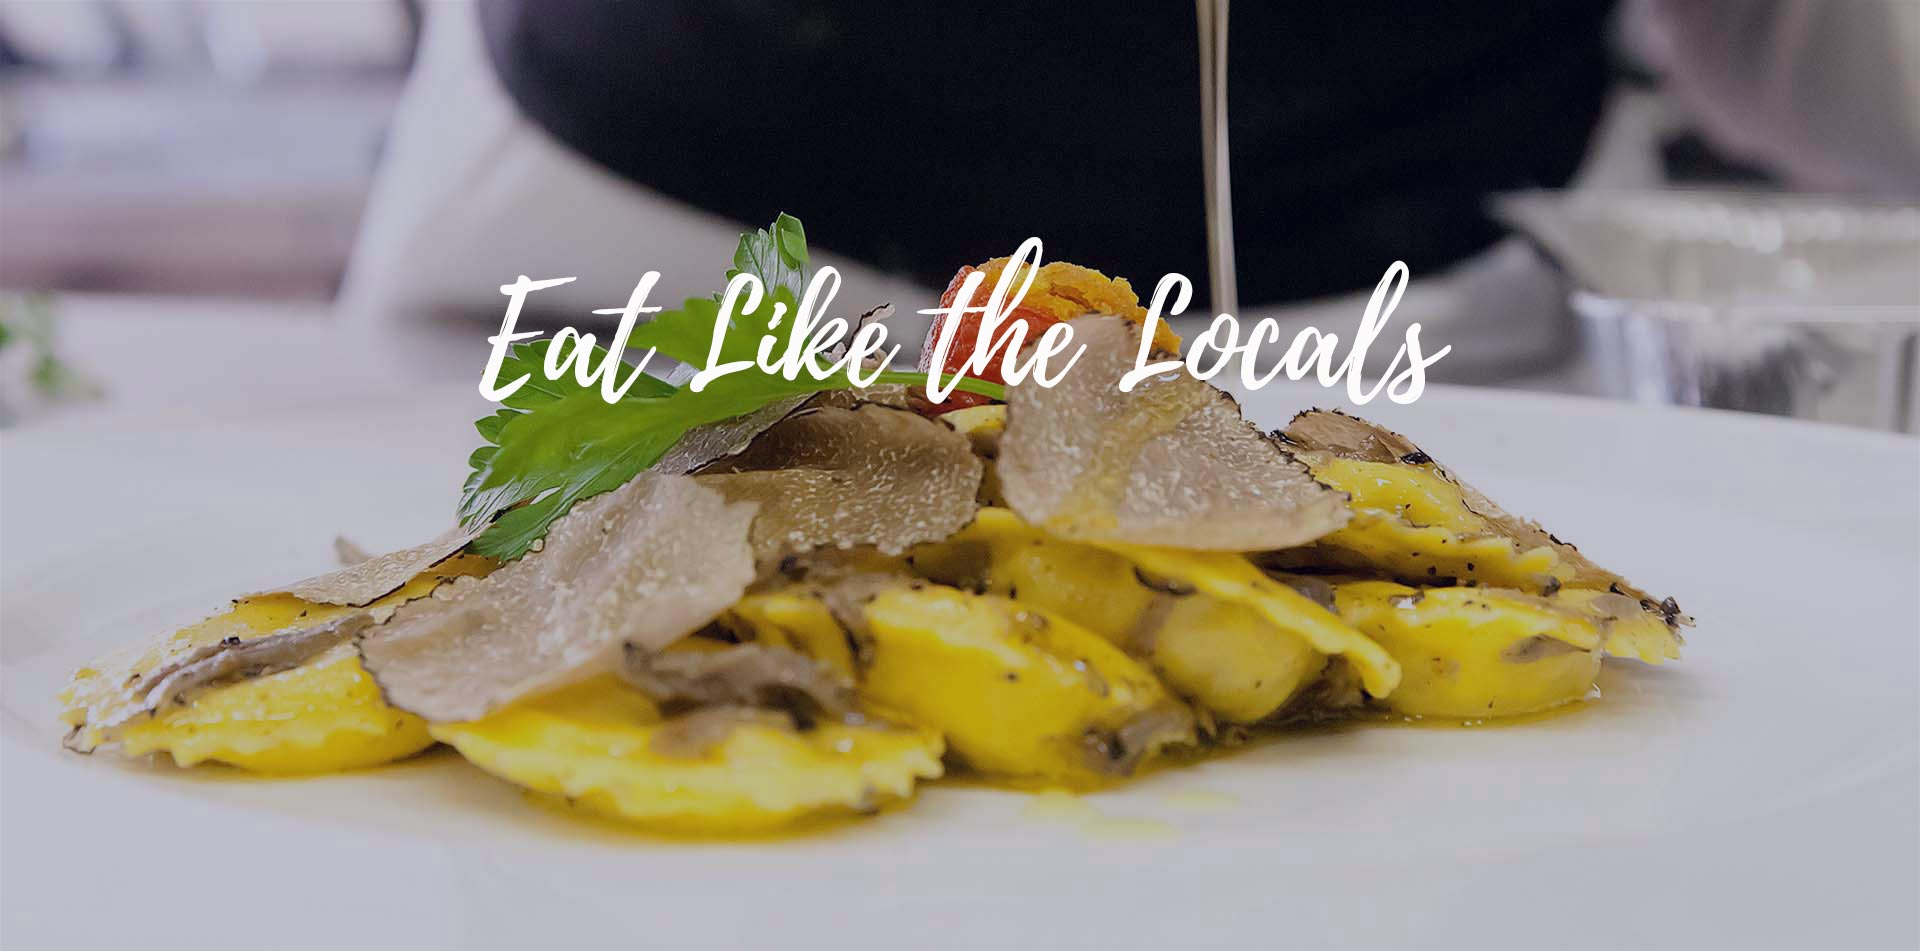 Europe Italy Italian Culinary tour homemade pasta with shaved truffle eat like the locals - luxury vacation destinations